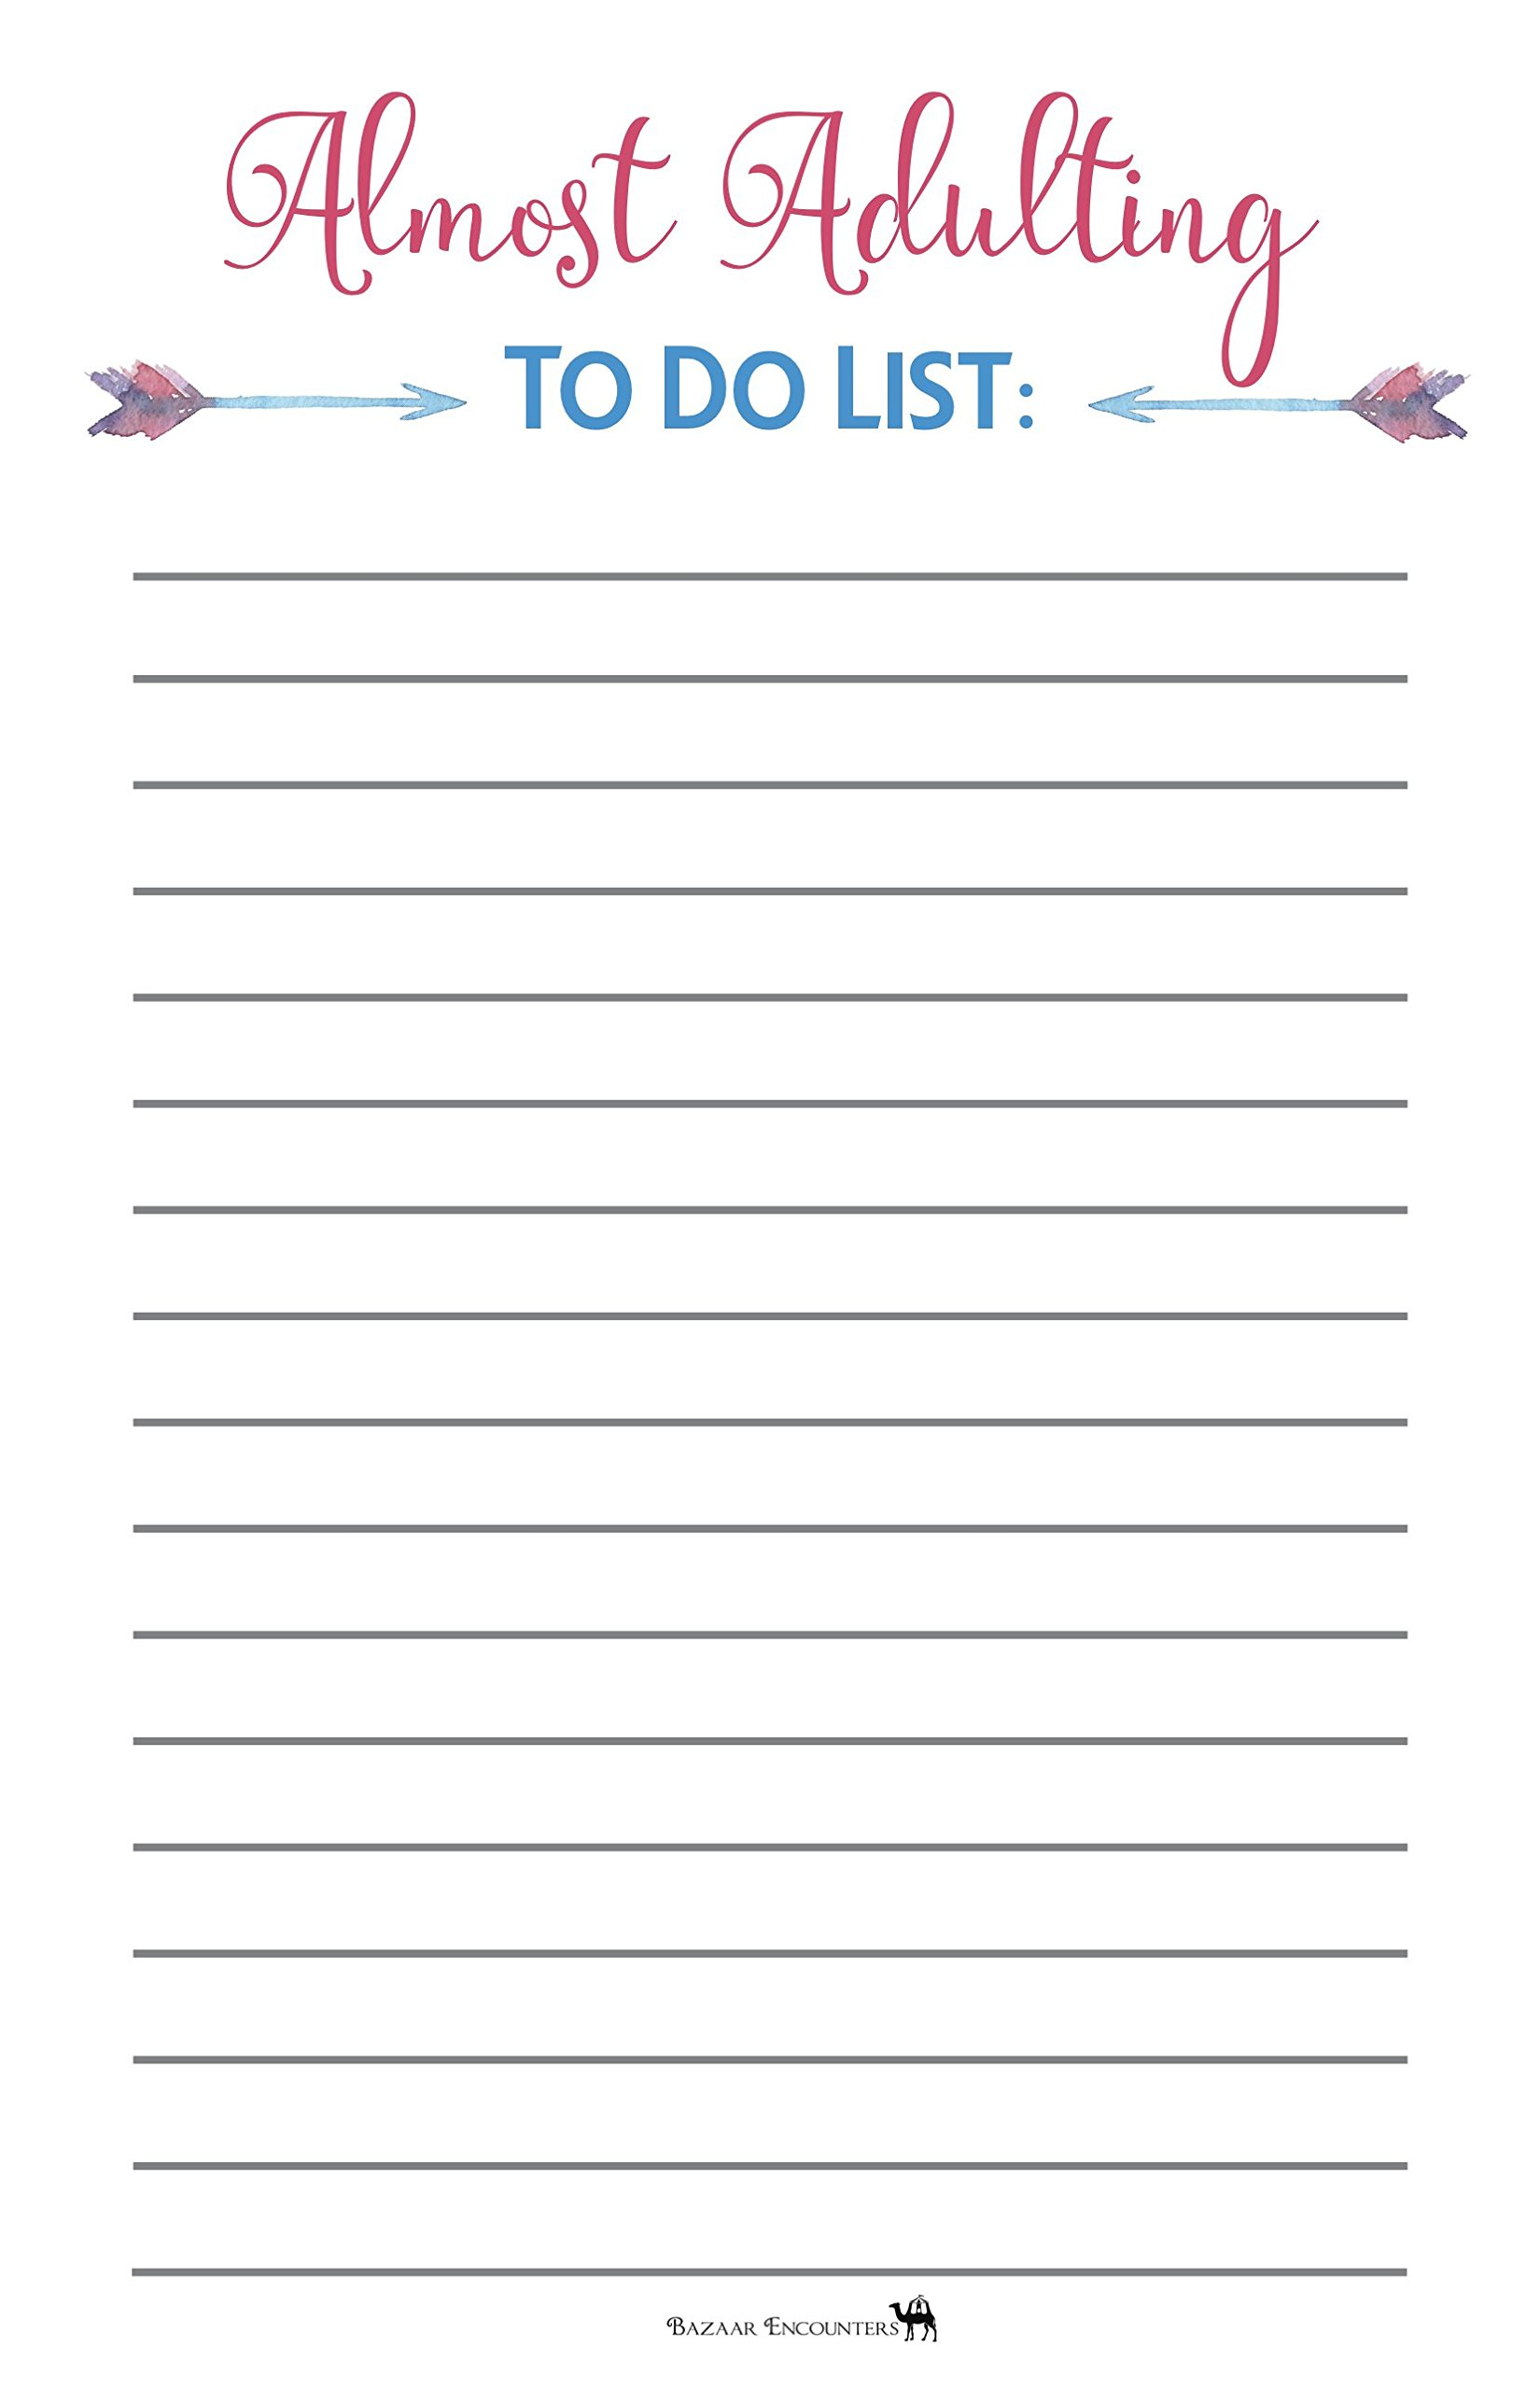 Almost Adulting To Do List Magnetic Pad, Graduation Gift Idea, Grocery List for Fridge, Funny Notepad with Magnet, 50 Sheets, 5.5 x 8.5, Great School, Dorm, Locker, Office Gift! Made in USA